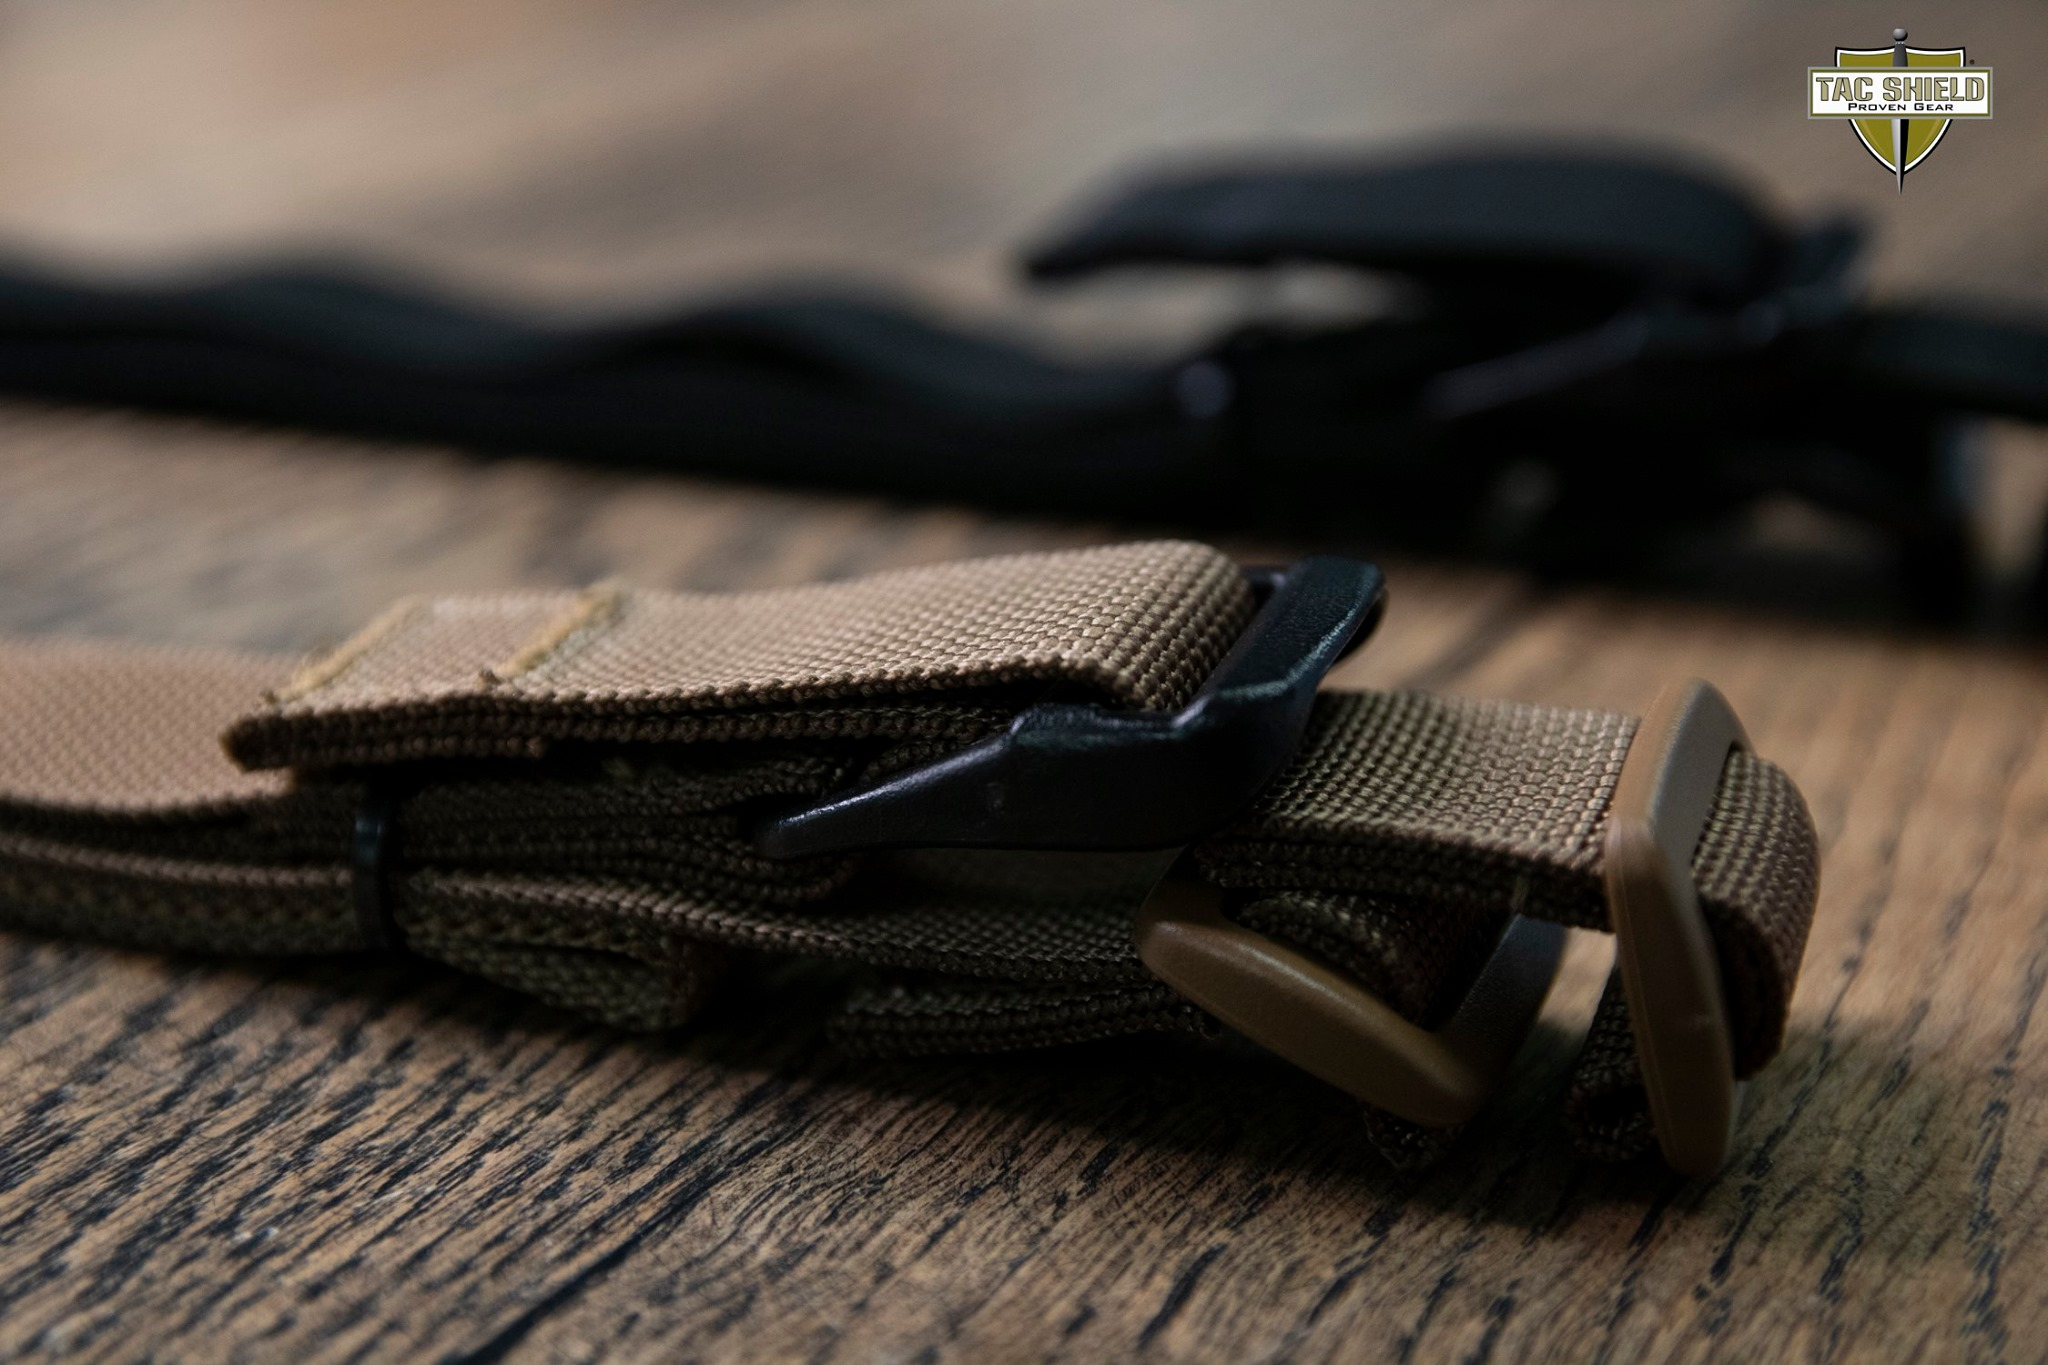 New Padded QD 2-Point Rifle Sling from Tac Shield